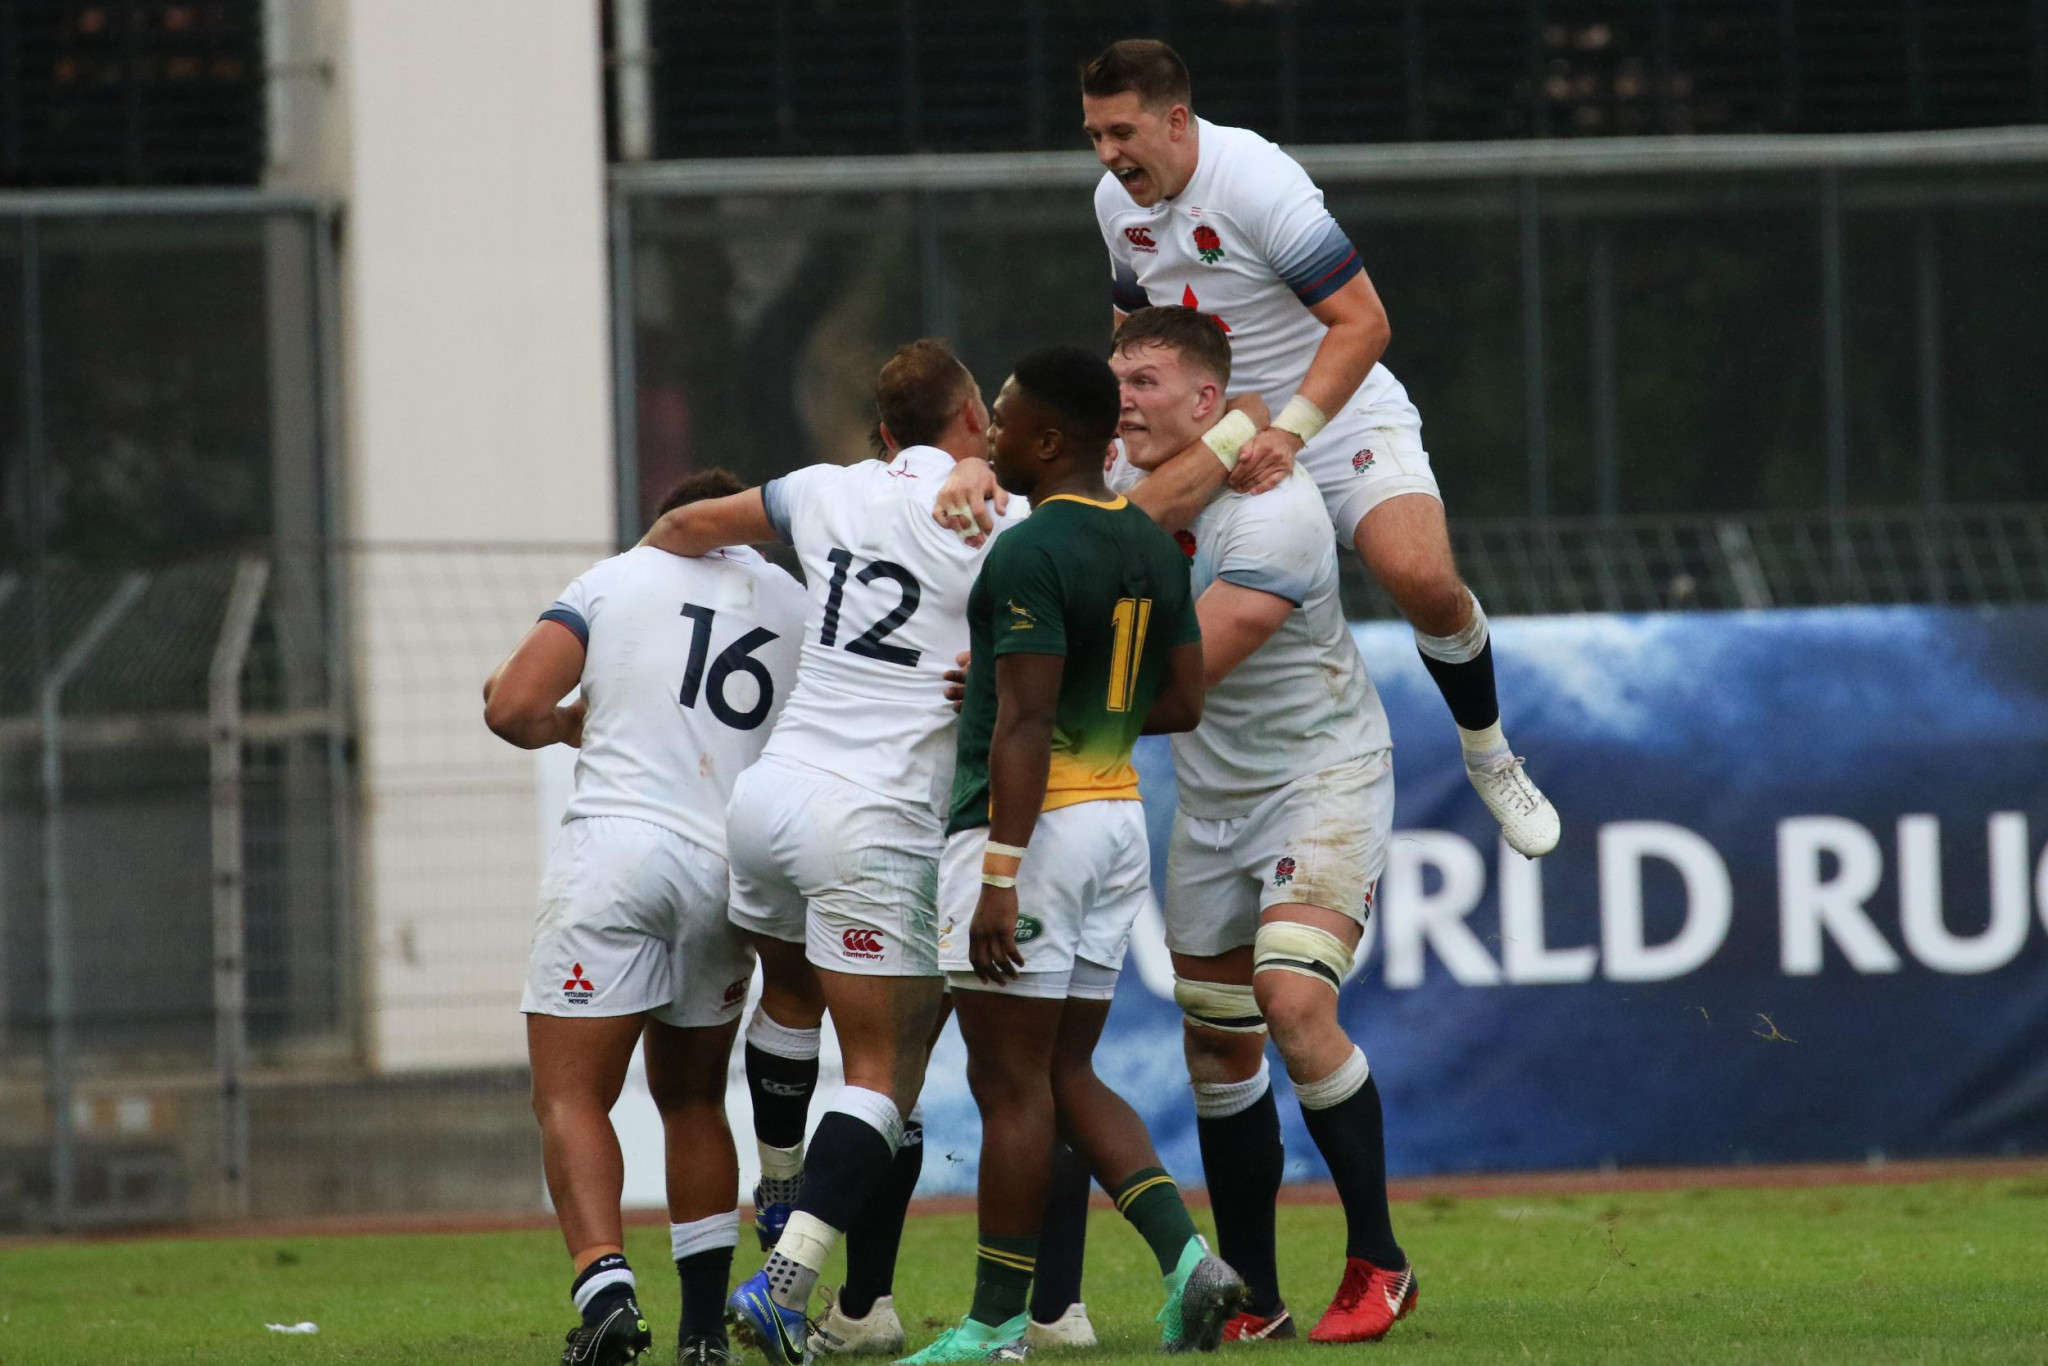 England held on against South Africa to reach their sixth straight final ©World Rugby